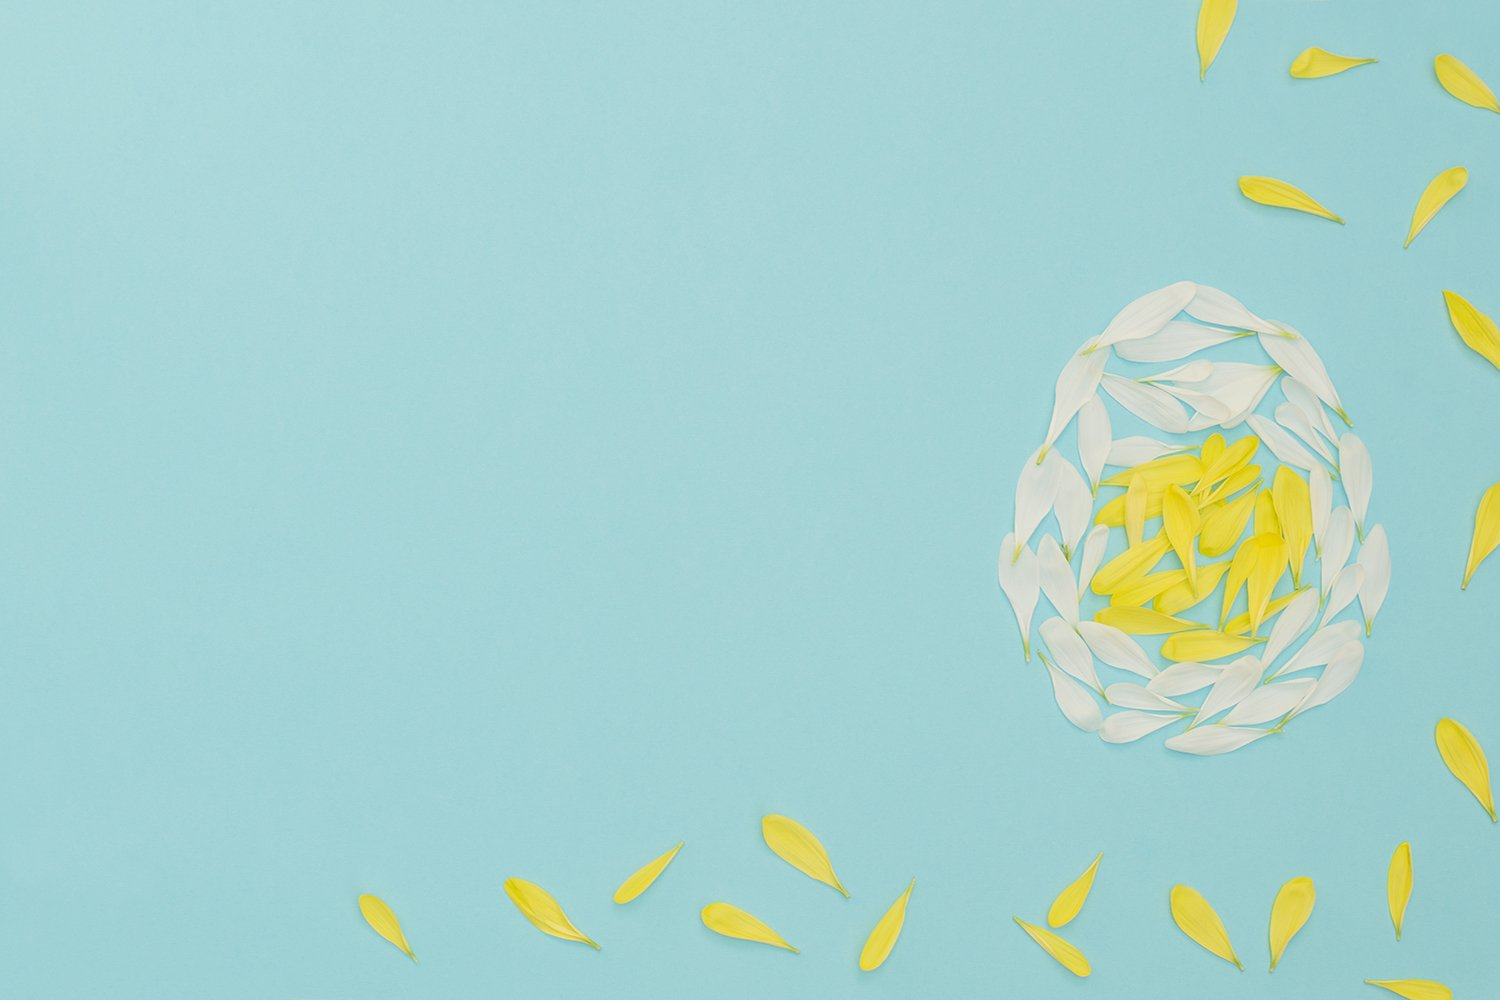 Easter egg made of yellow and white flower petals example image 1